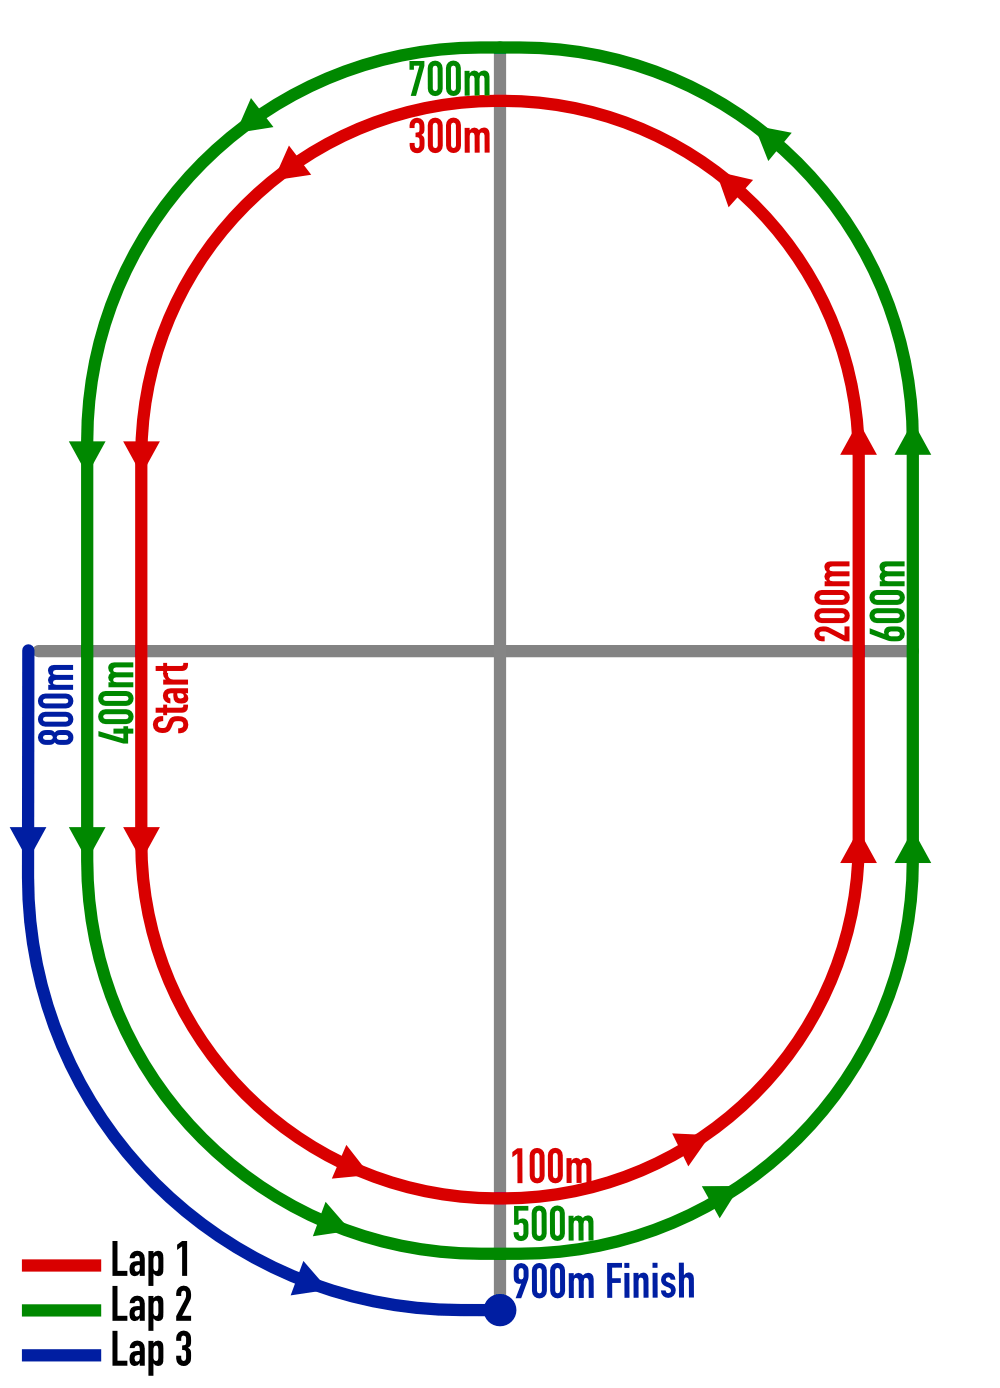 hight resolution of 300 meter track diagram wiring diagram load 300 meter track diagram